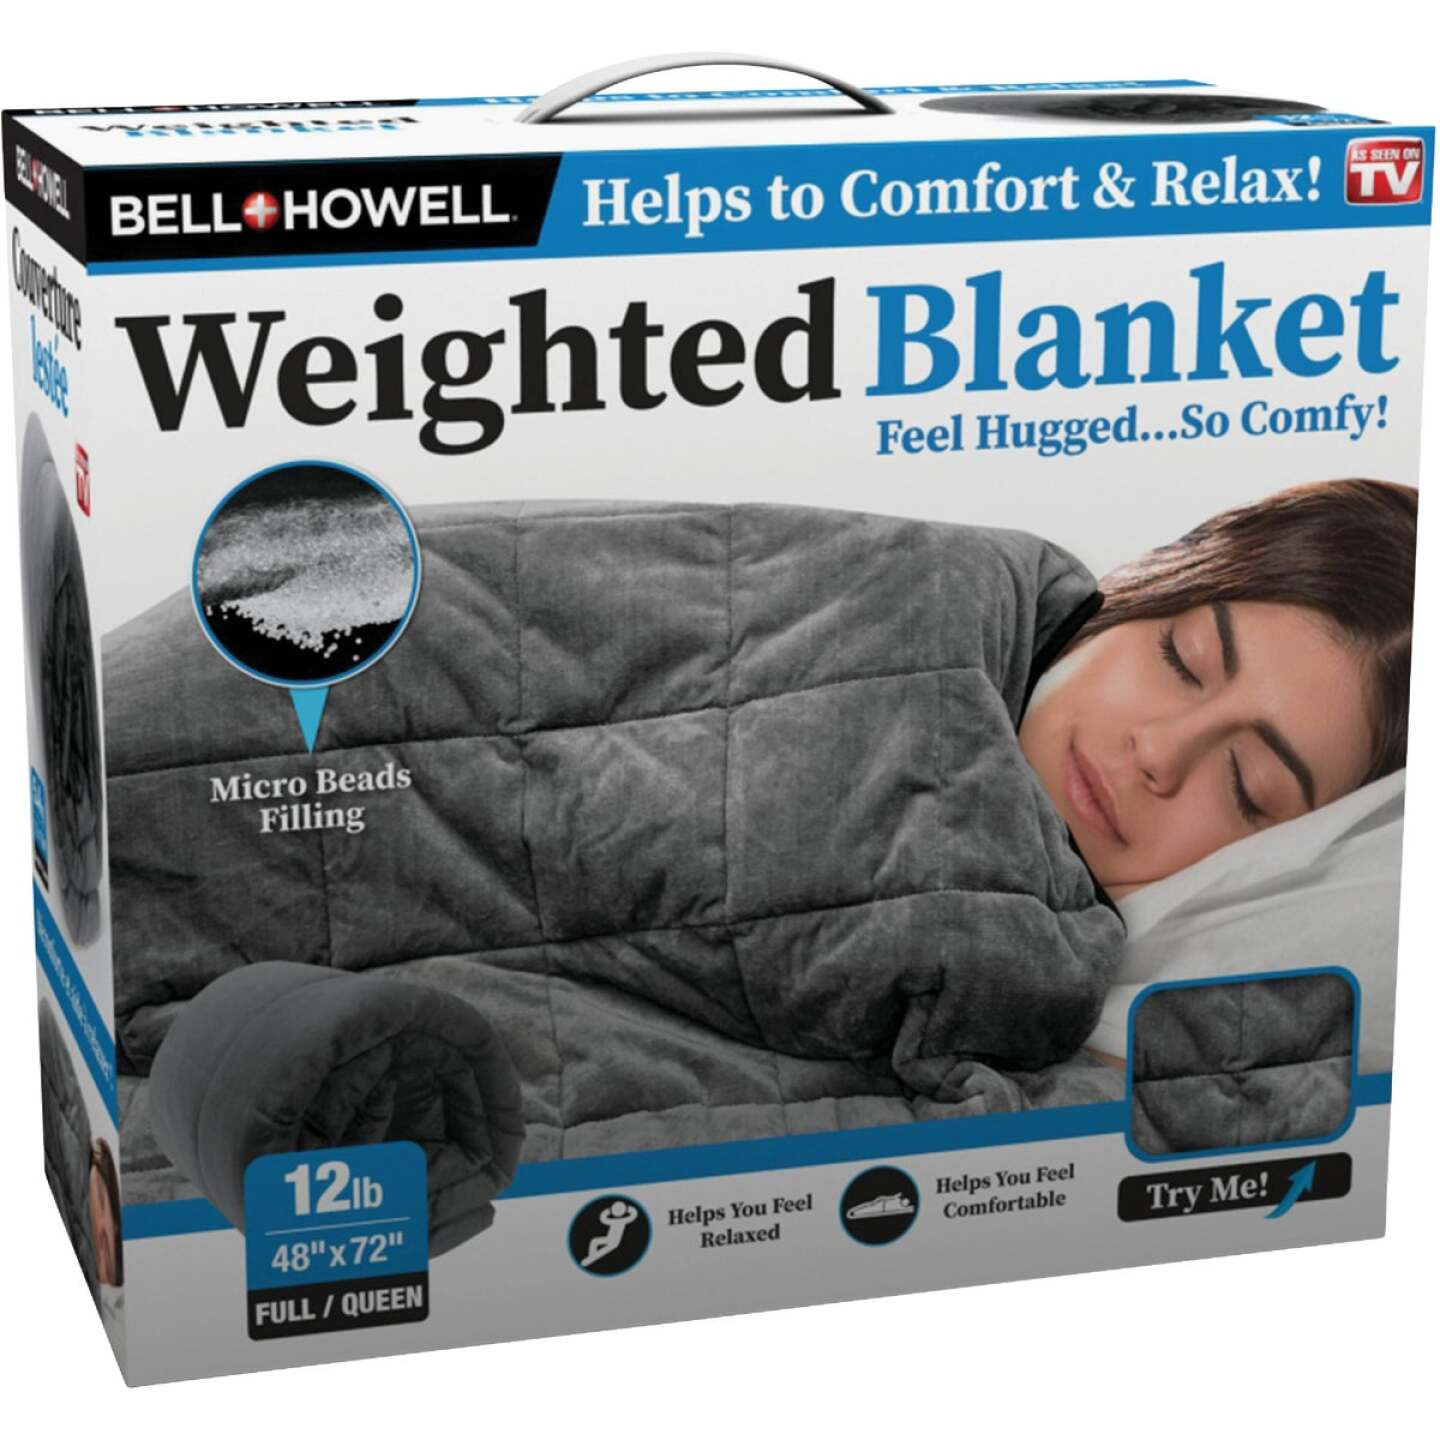 Bell+Howell 48 In. x 72 In. Full/Queen 12 Lb. Weighted Blanket Image 1